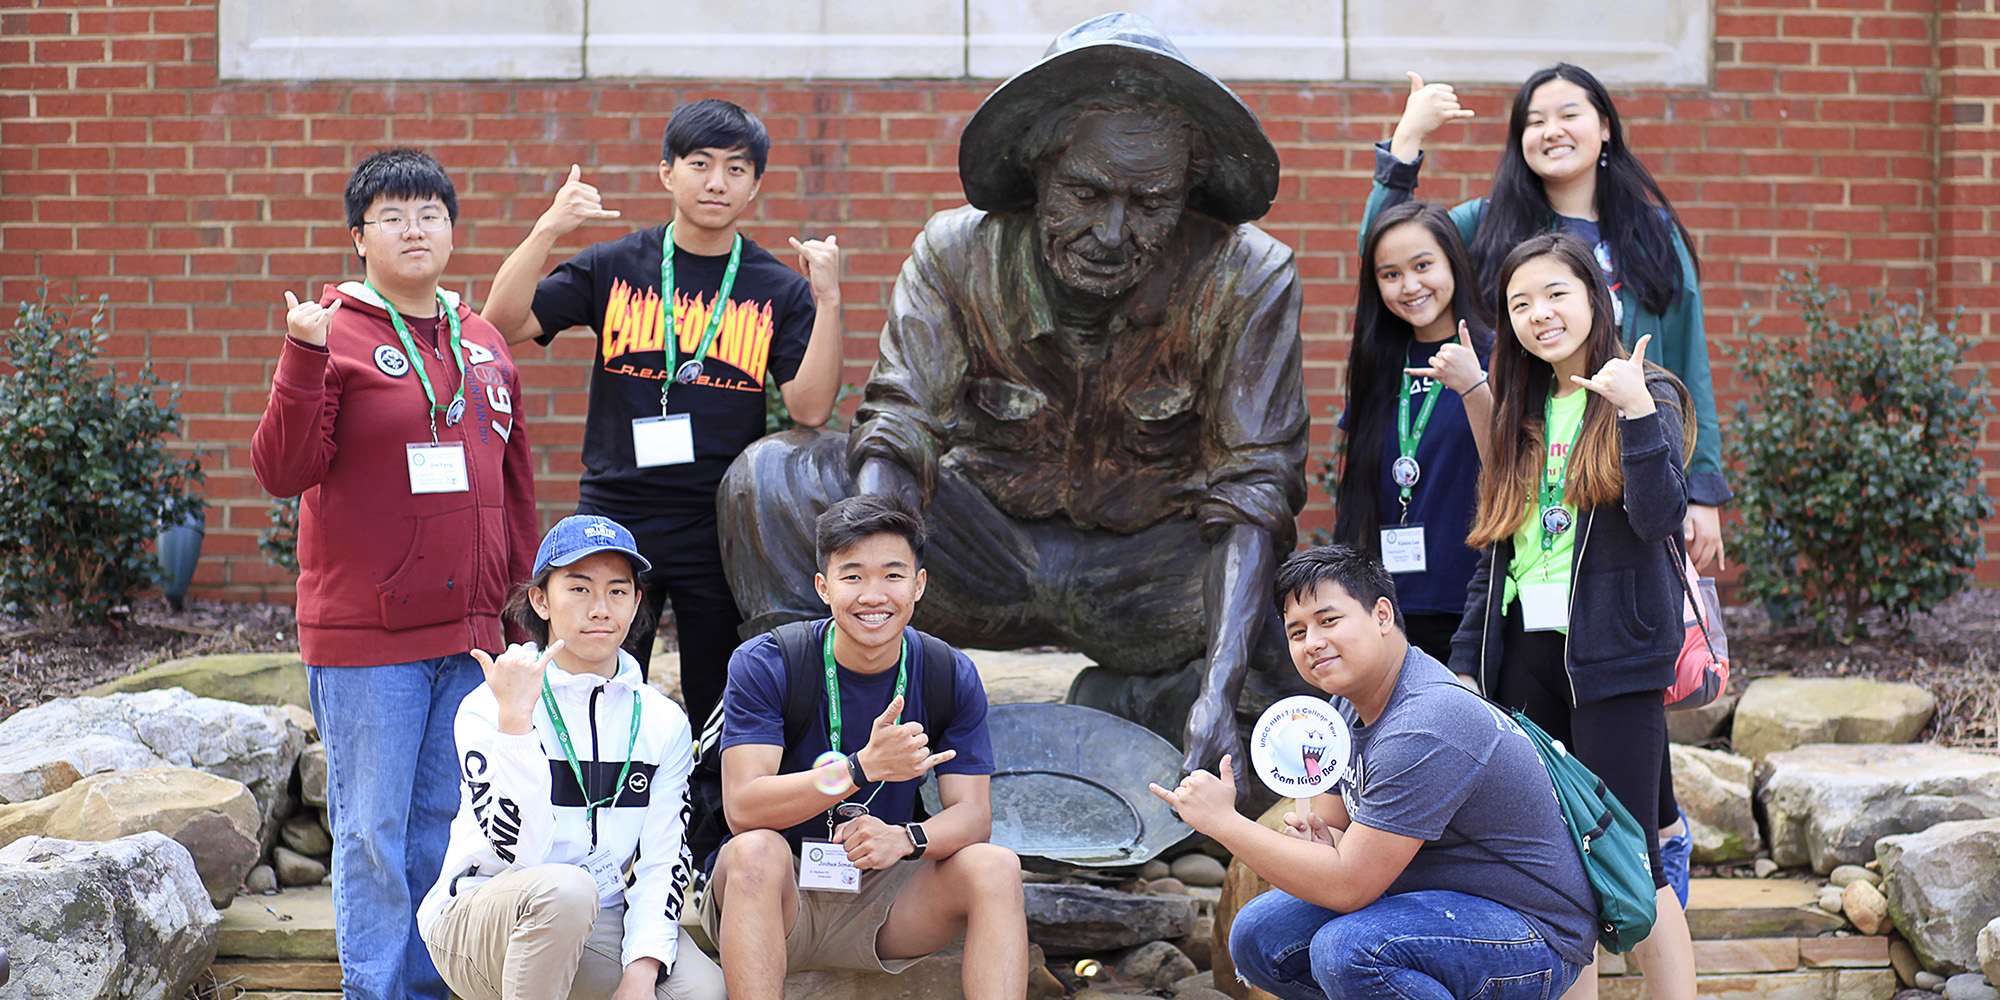 UNC Charlotte Hmong students